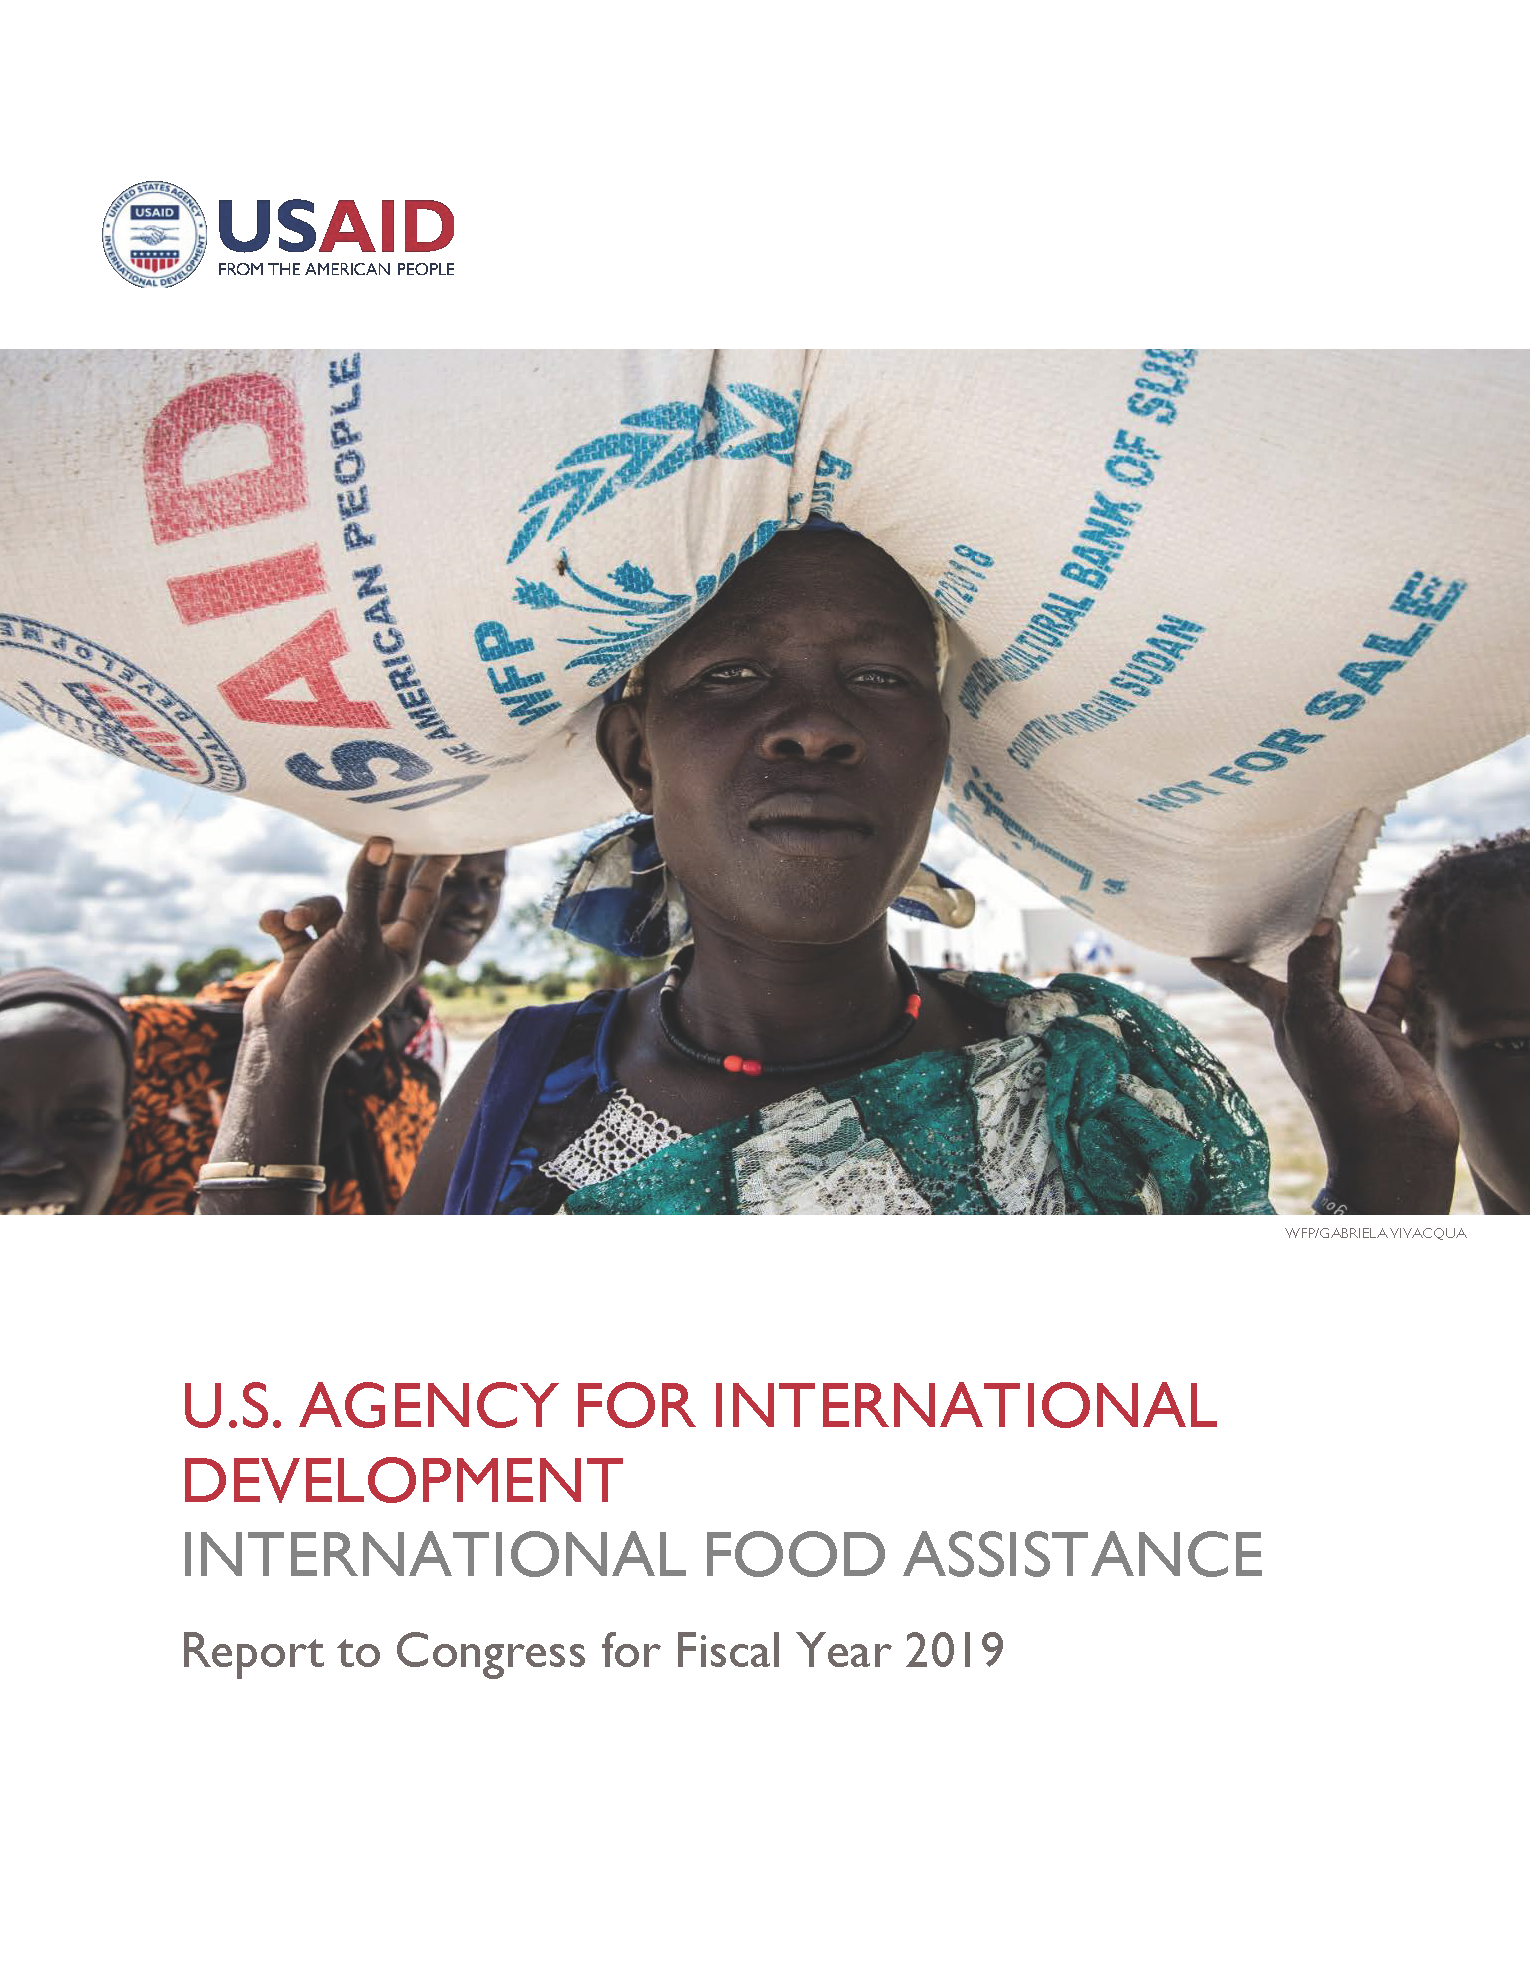 USAID International Food Assistance Report, FY 2019